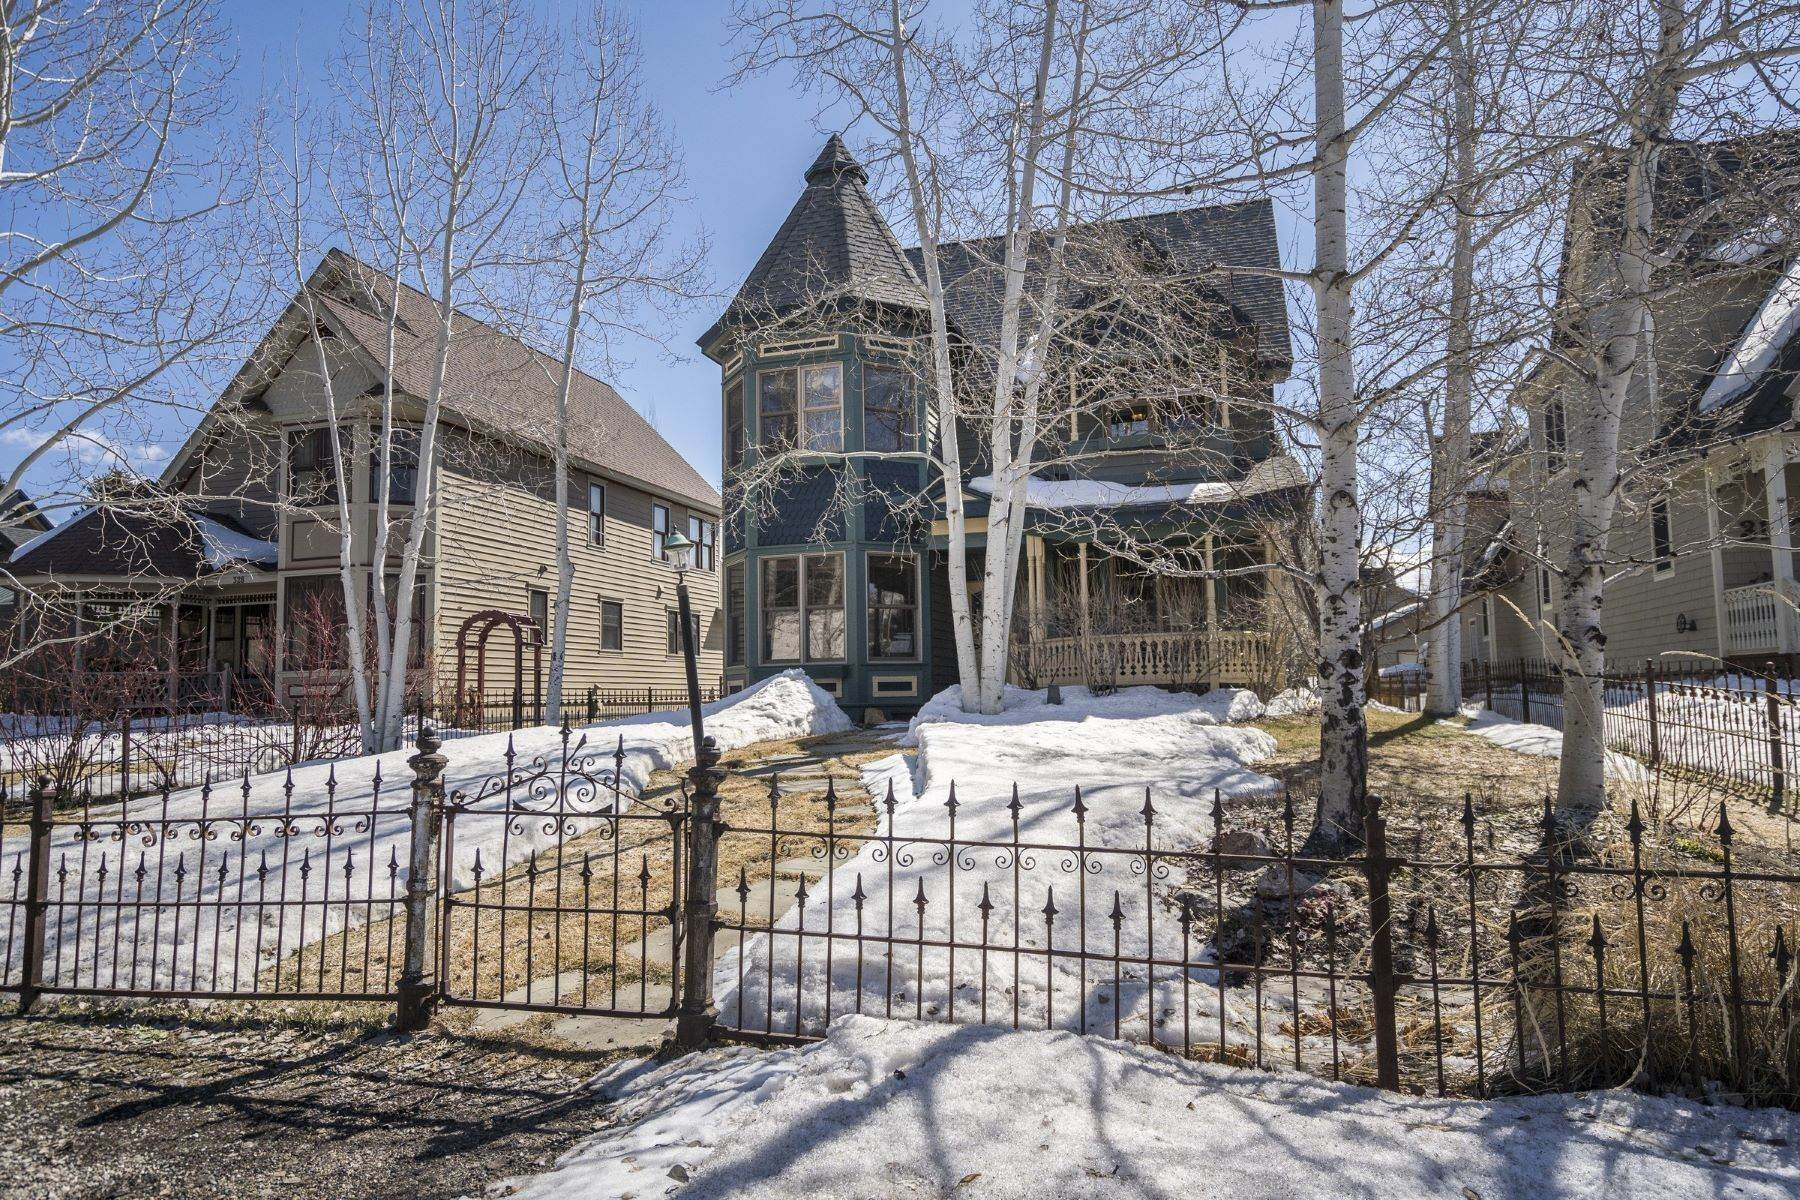 Single Family Homes for Sale at Victorian-style home in the center of downtown Steamboat 320 9th Street Steamboat Springs, Colorado 80487 United States